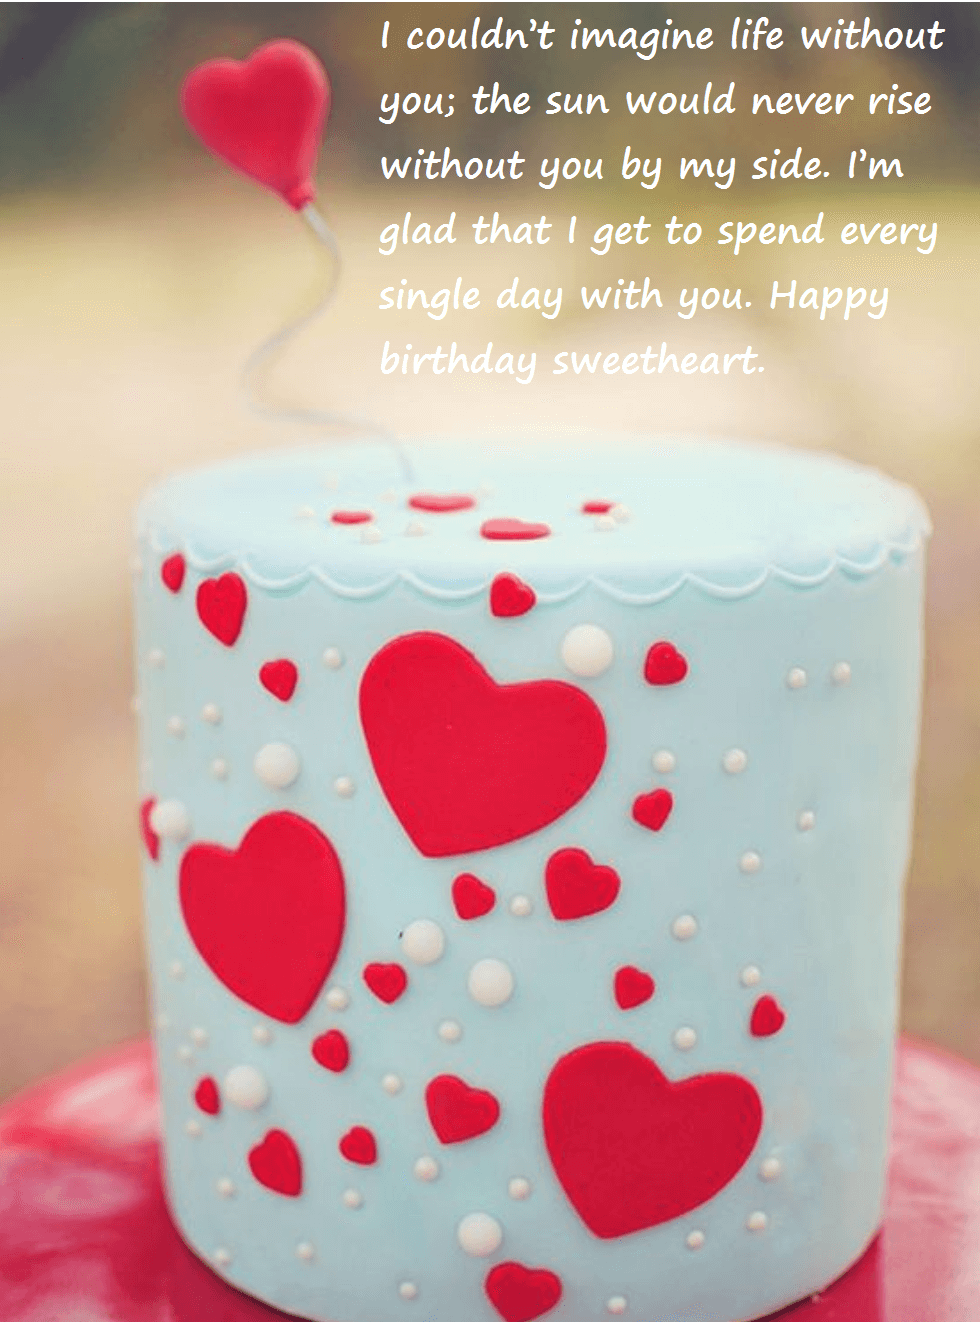 Birthday Cake Greeting Images For Wife House Of Quotes